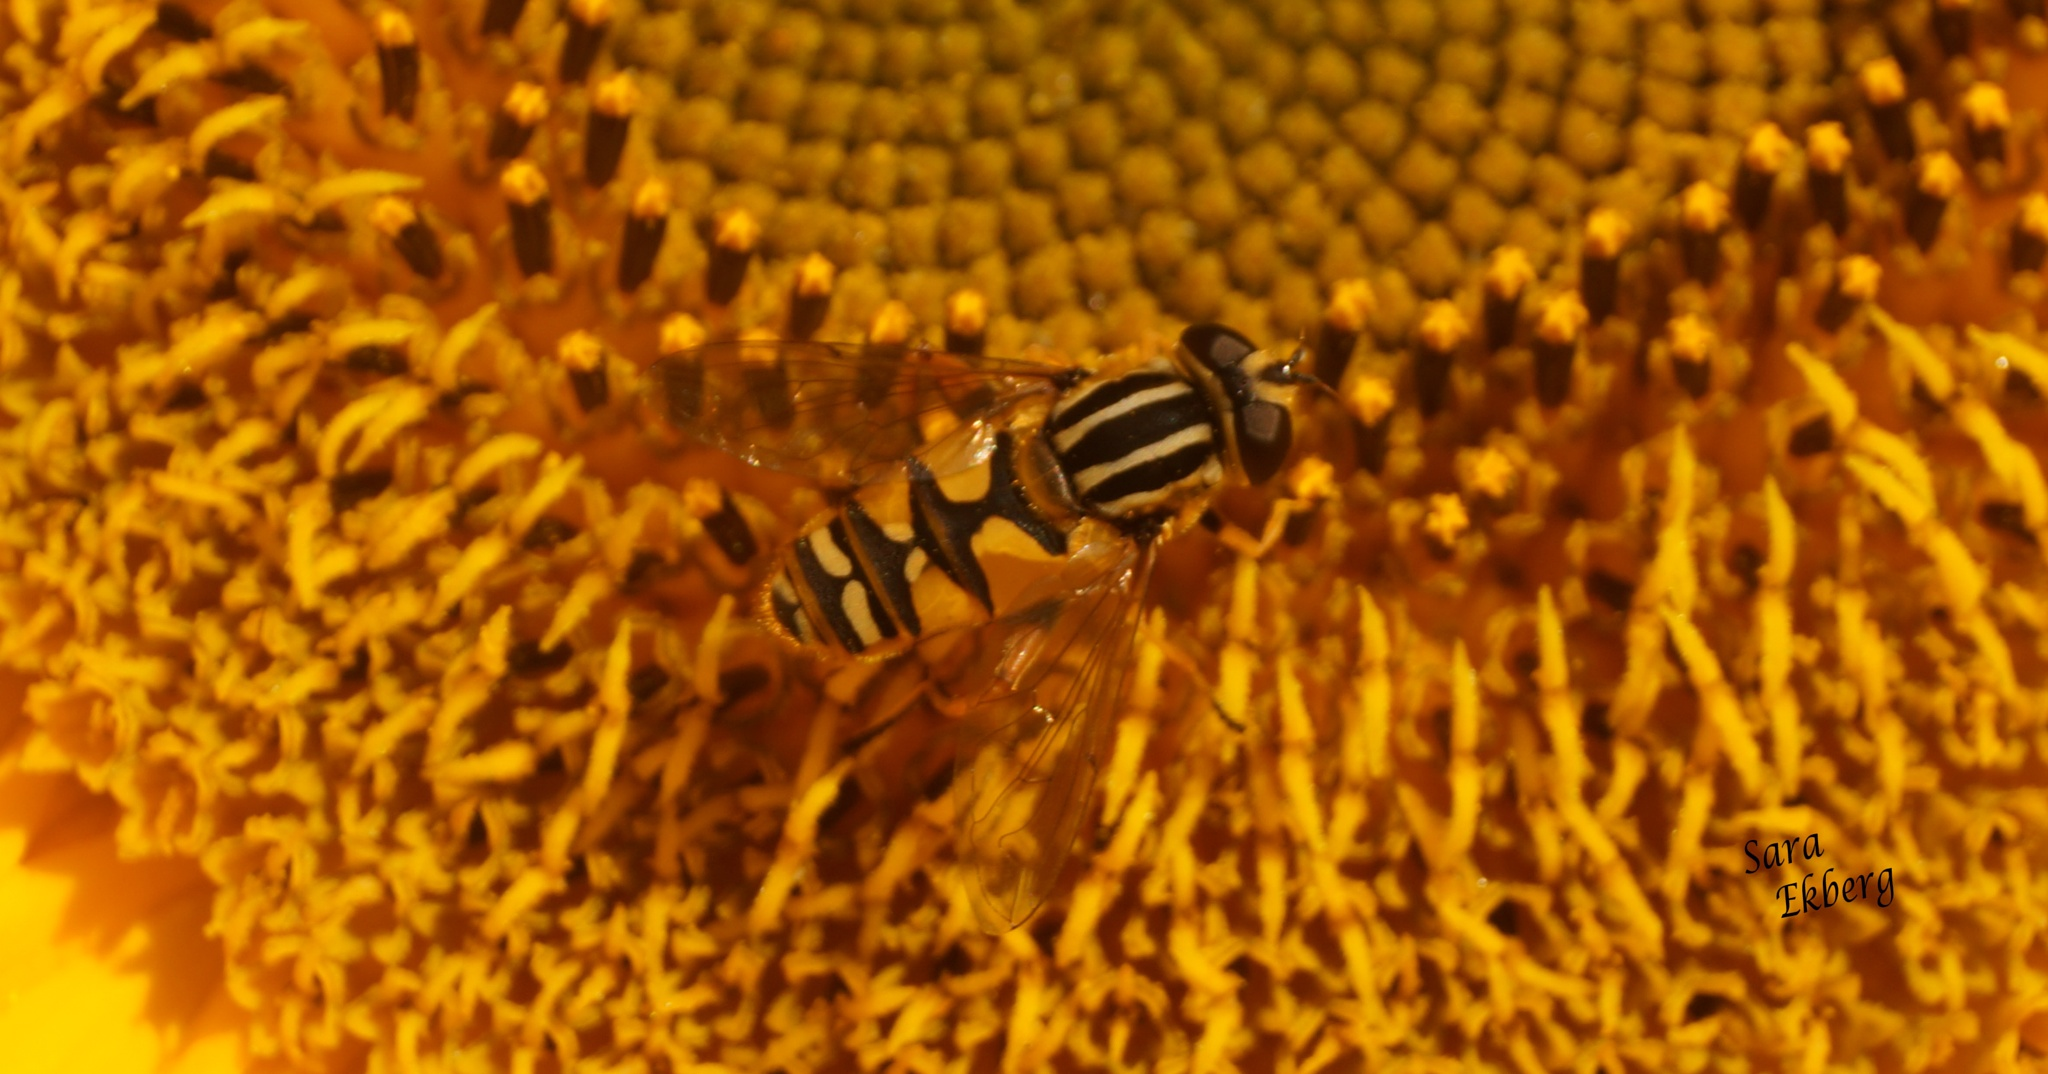 A wasp with great pattern. by SaraEkberg